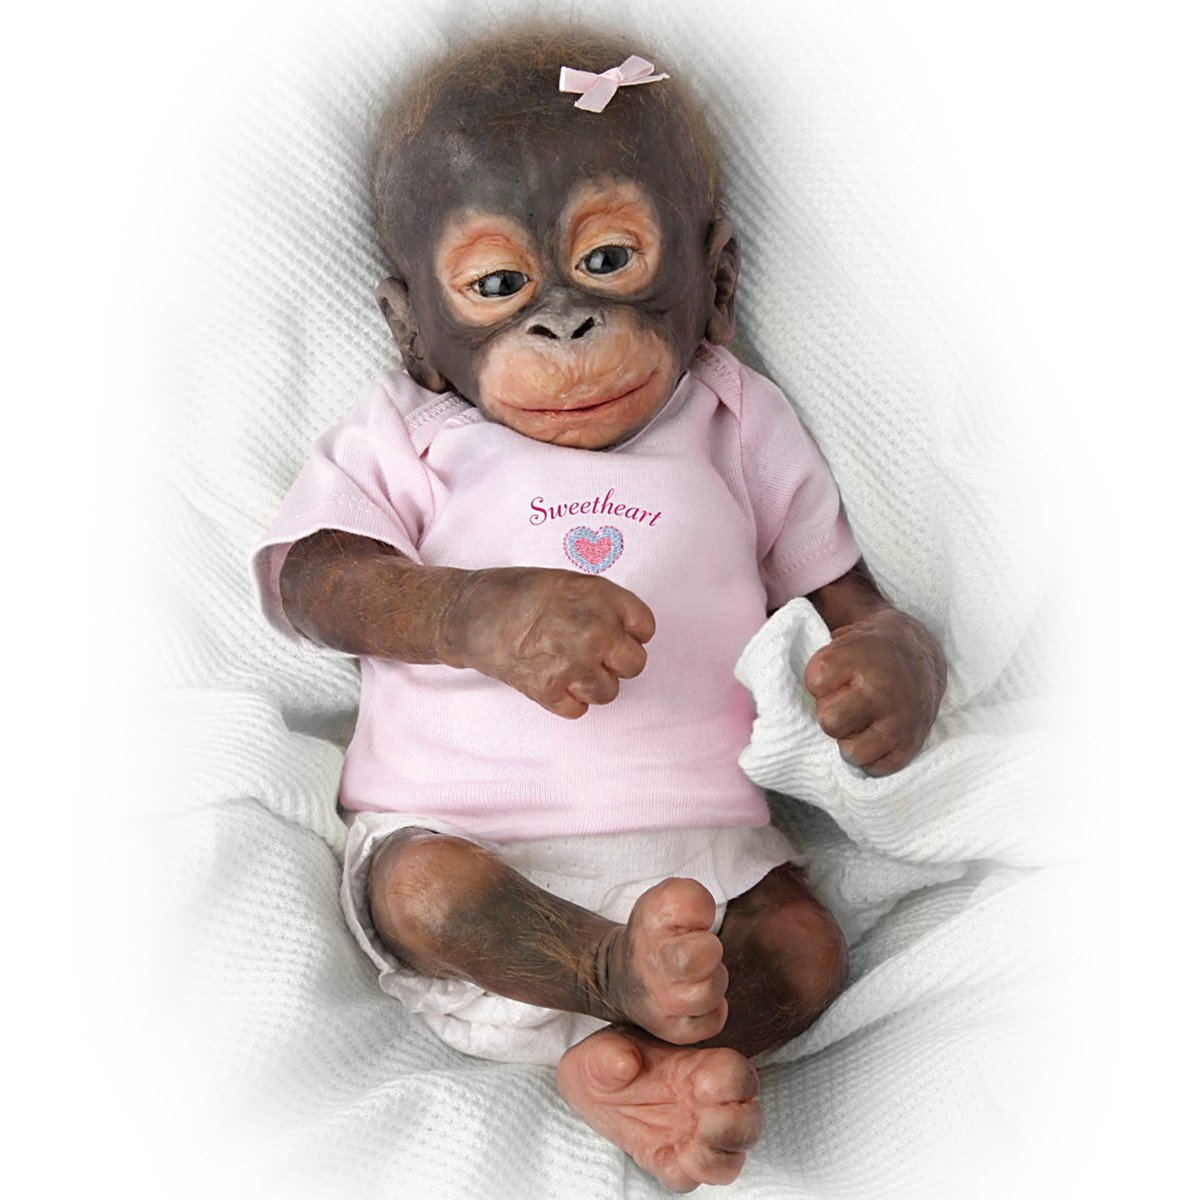 Ashton Drake 'Little Umi' - Lifelike Orangutan Doll by Wendy Dickinson - Collector-Quality Silicone Limbs and Head